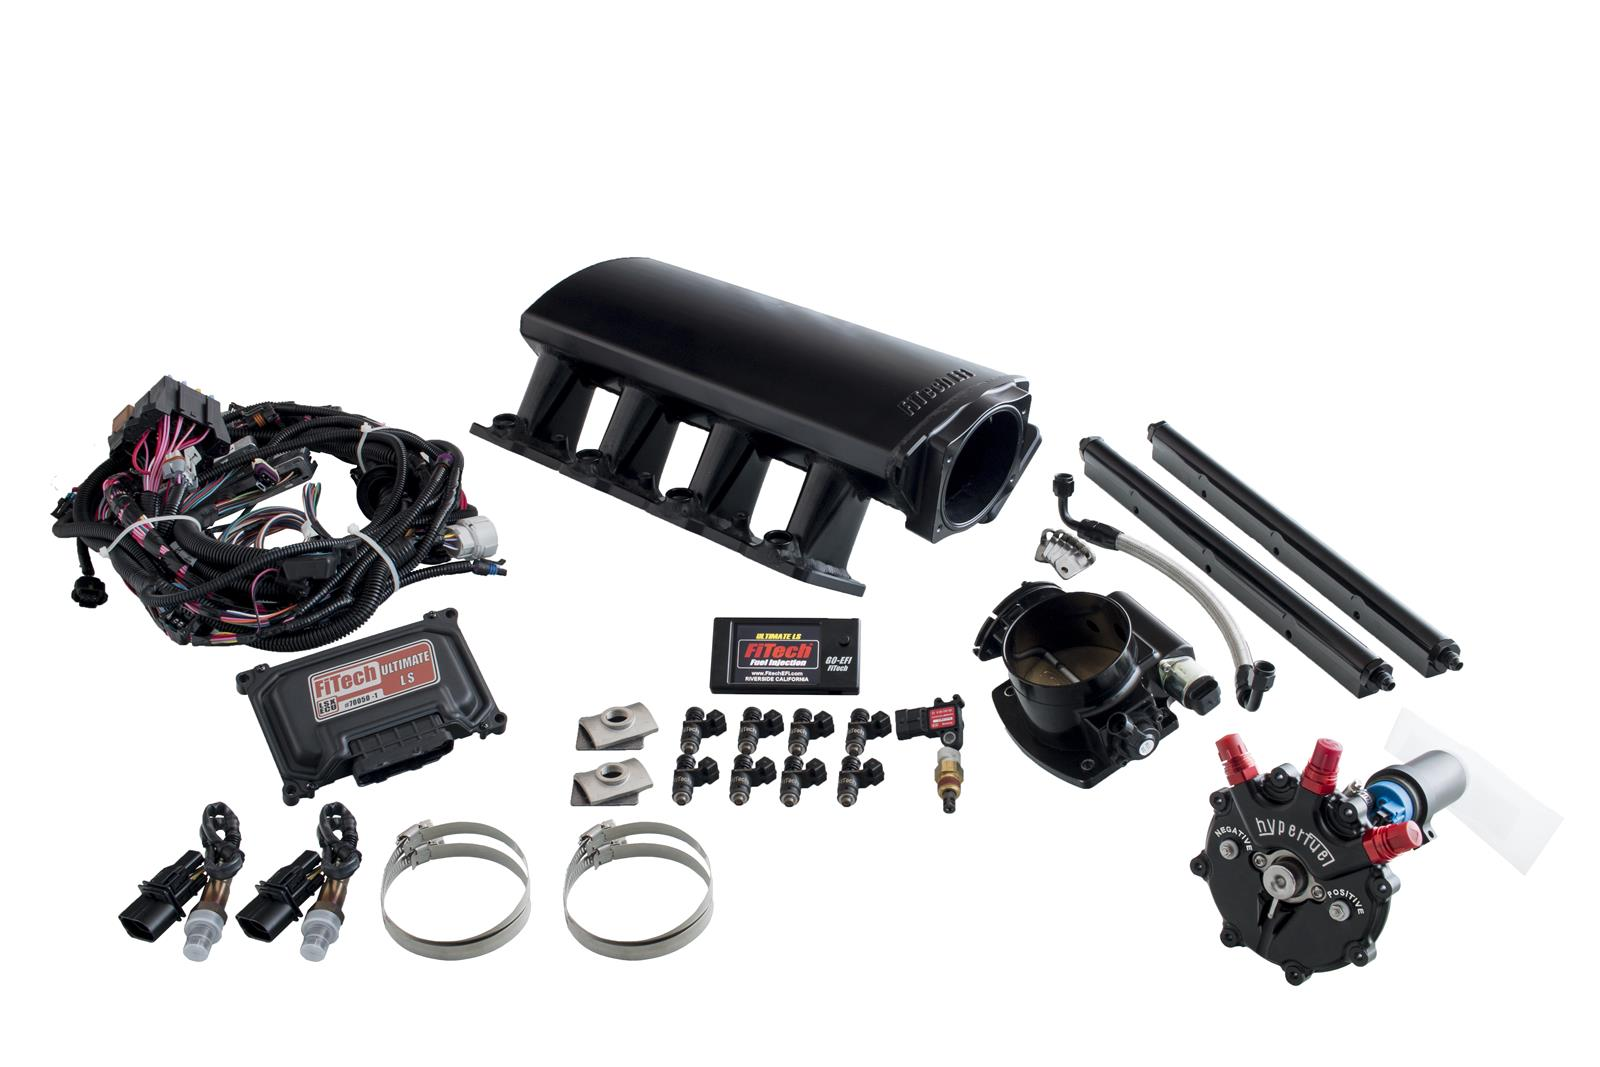 FiTech Ultimate LS EFI 750 HP Fuel Injection Systems with Hy-Fuel 74004